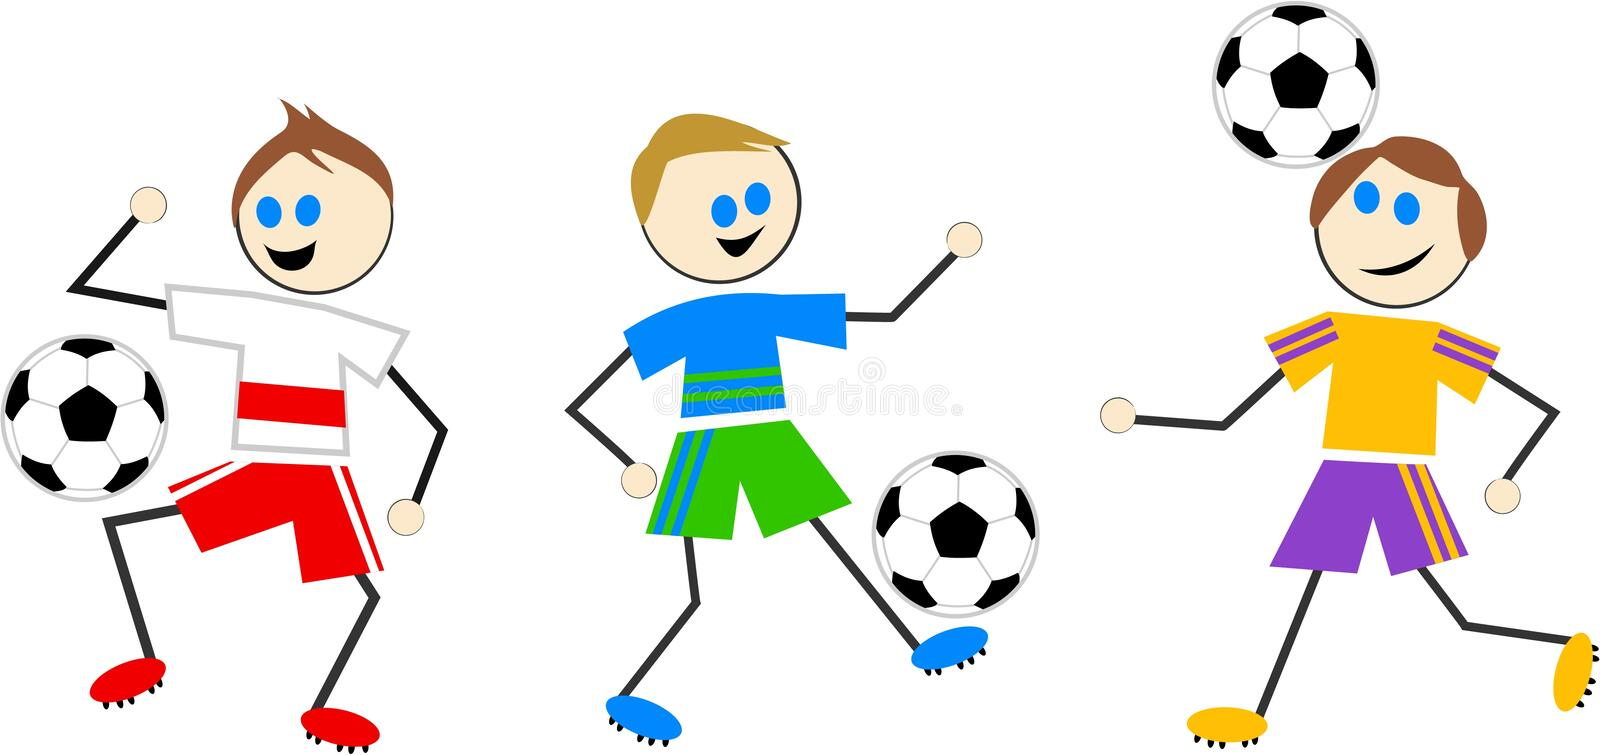 lurar fotboll royaltyfri illustrationer